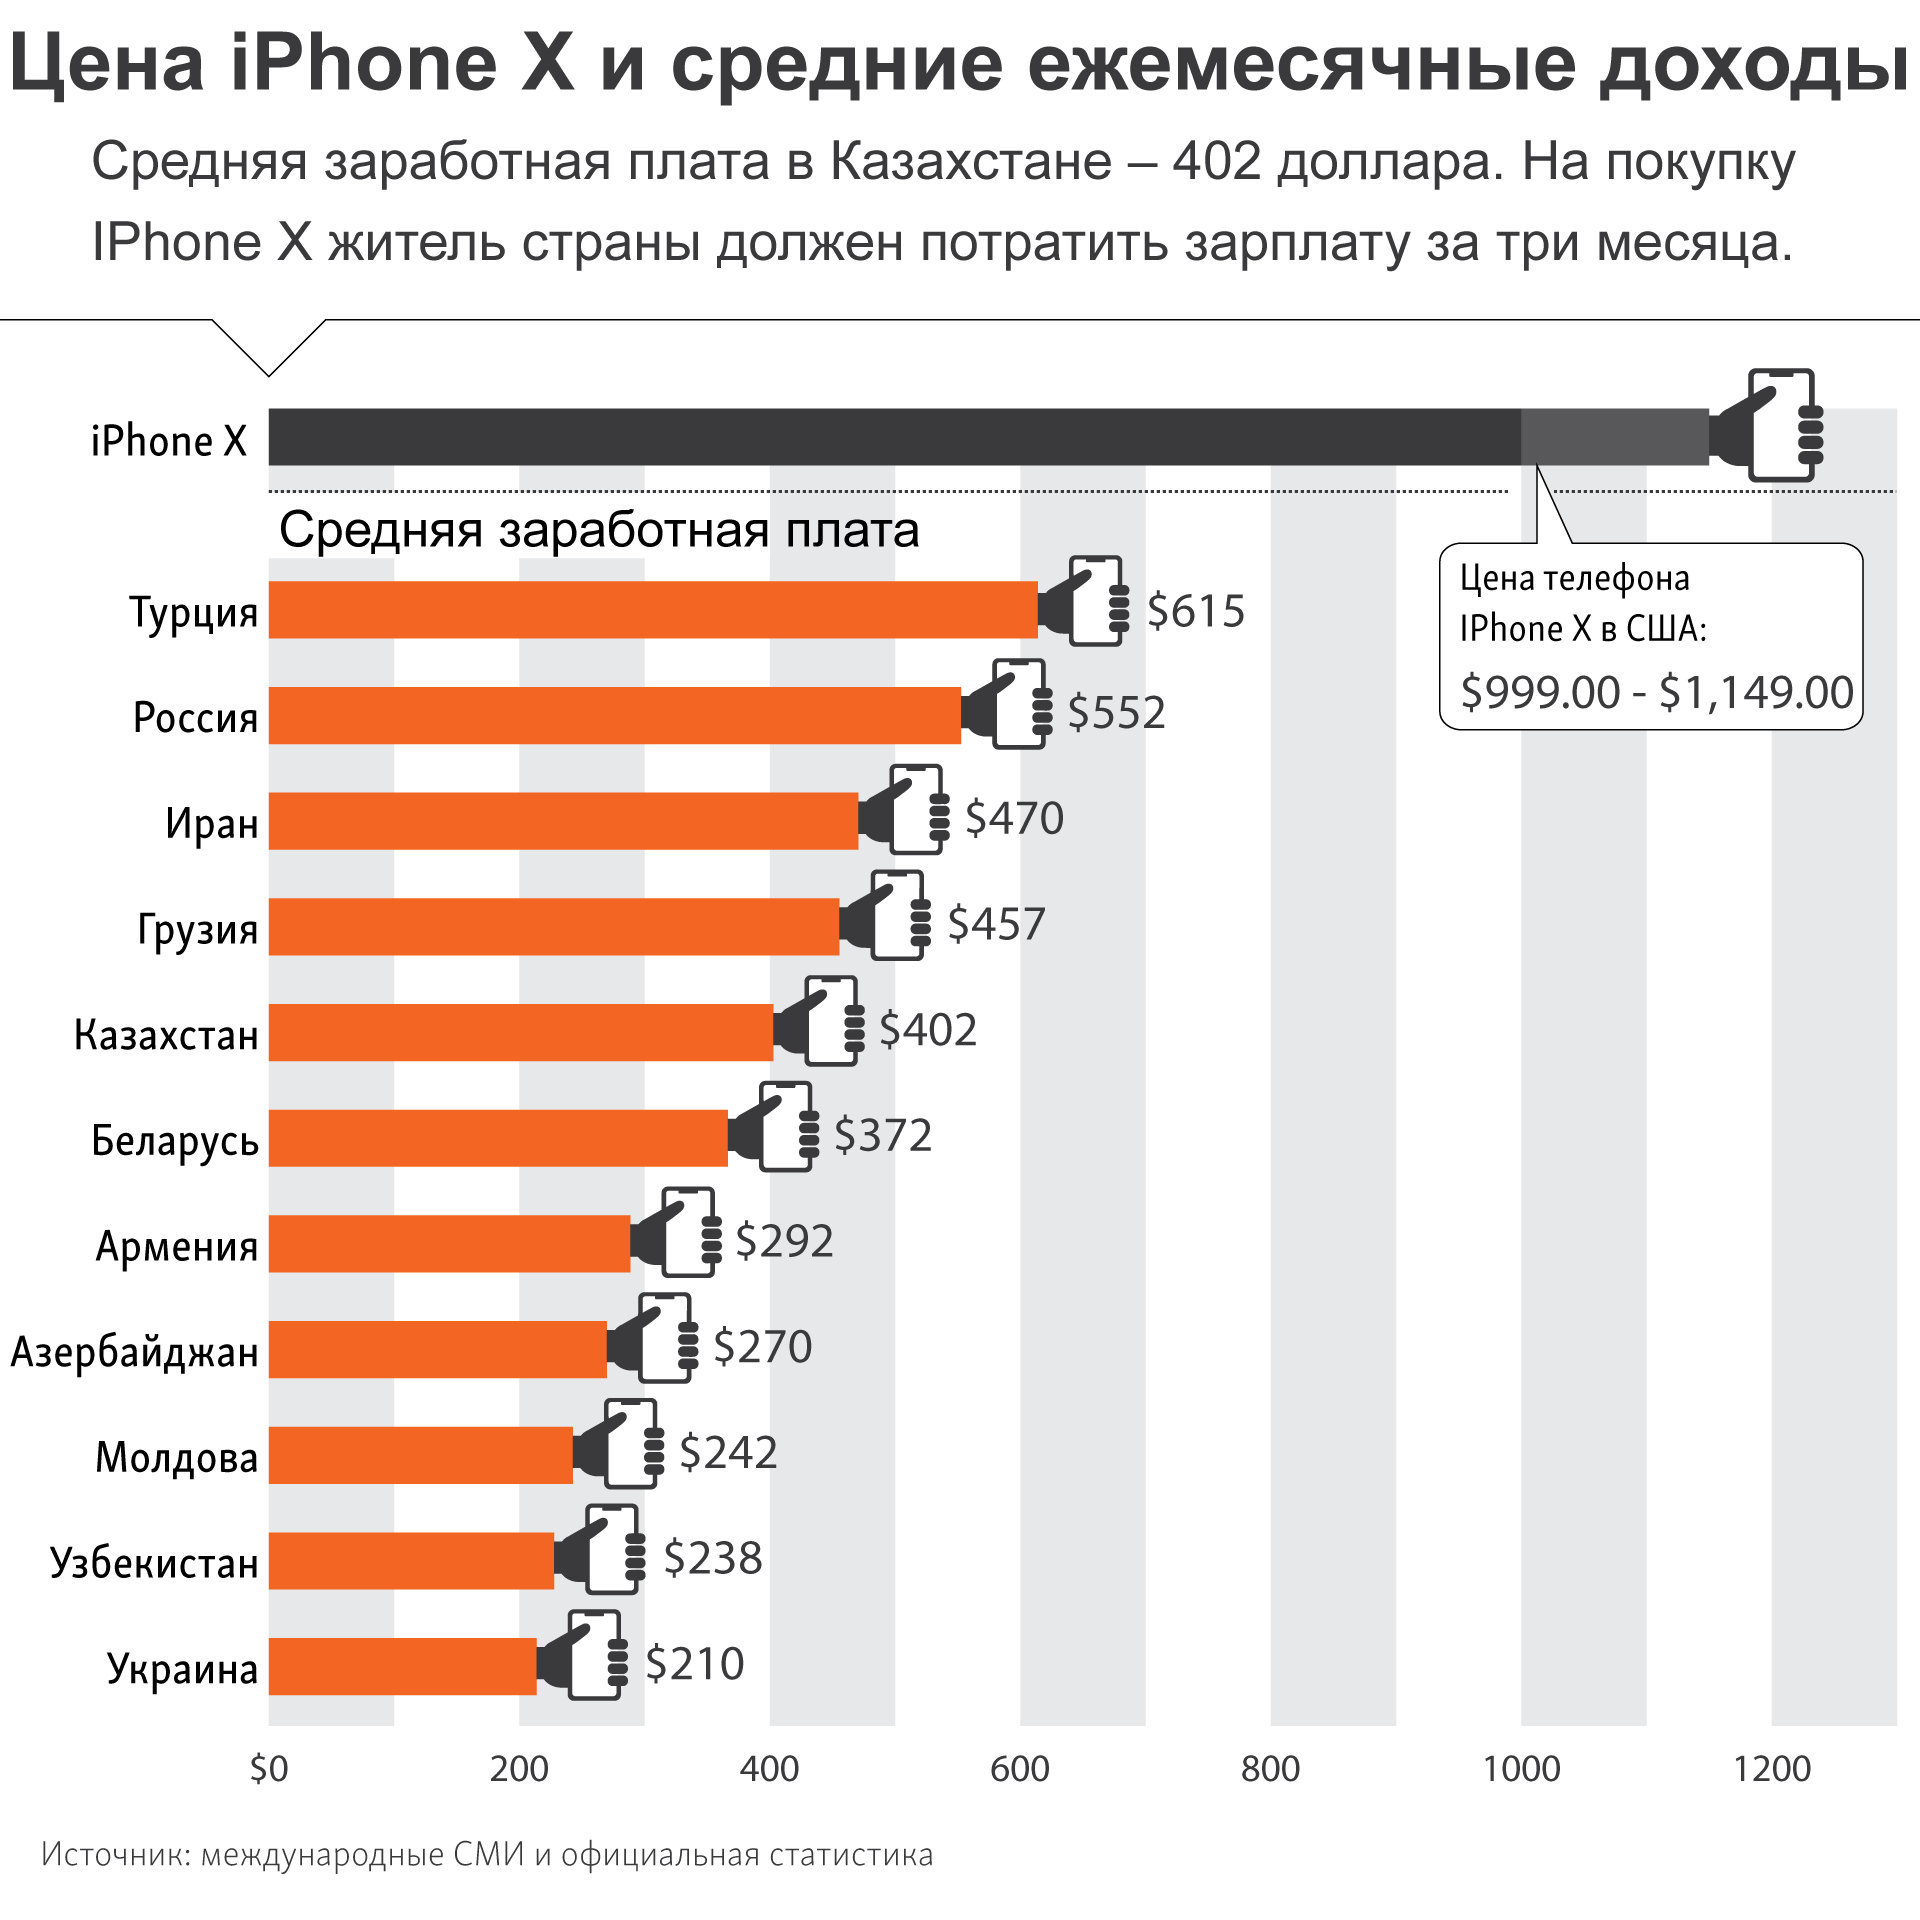 infographic about iphonex price